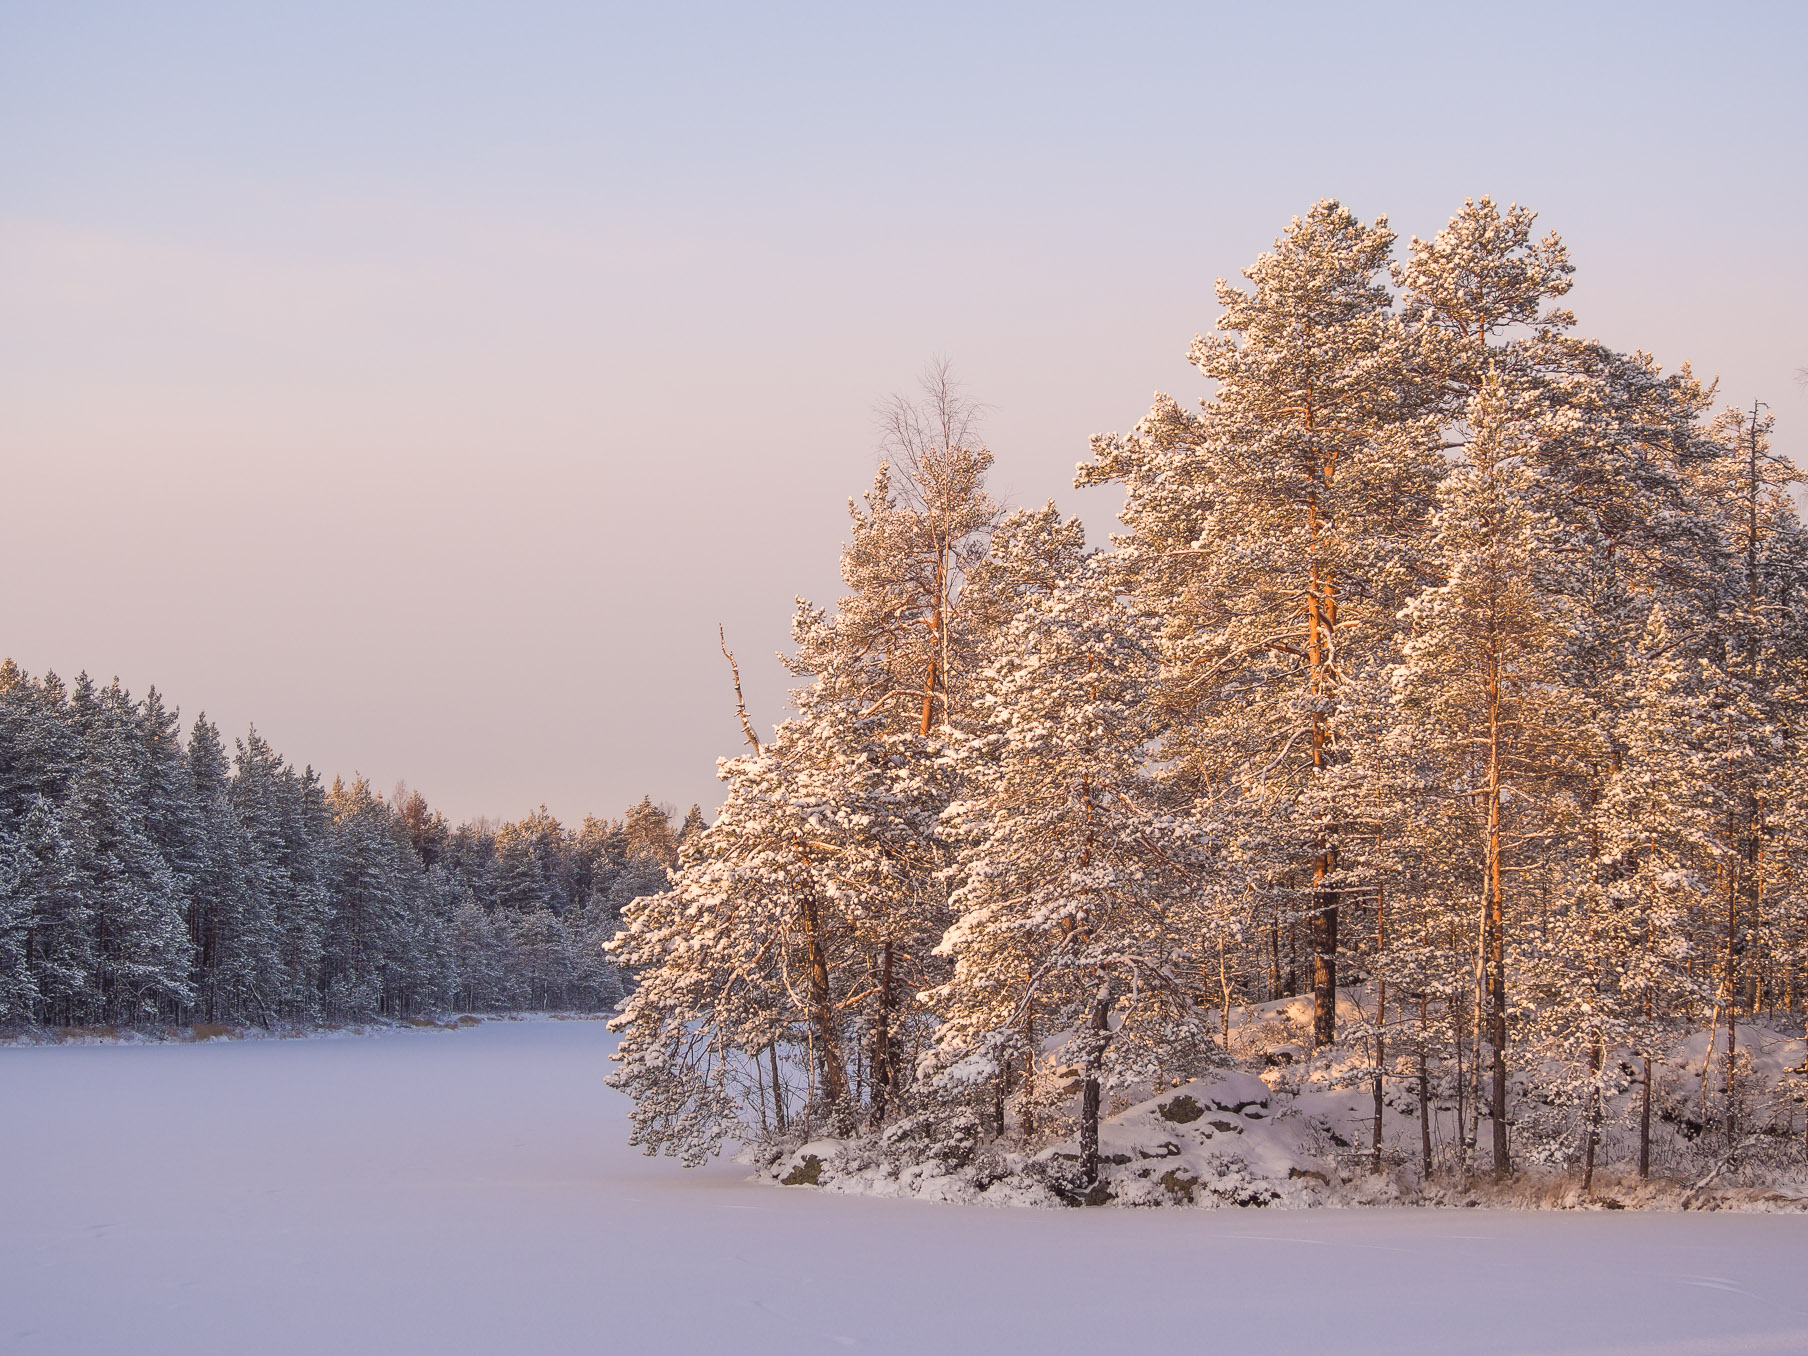 The amazing beauty and peacefulness of a Finnish forest in Nuuksio National Park, when all the trees are covered in snow. Nature near Helsinki, Finland.